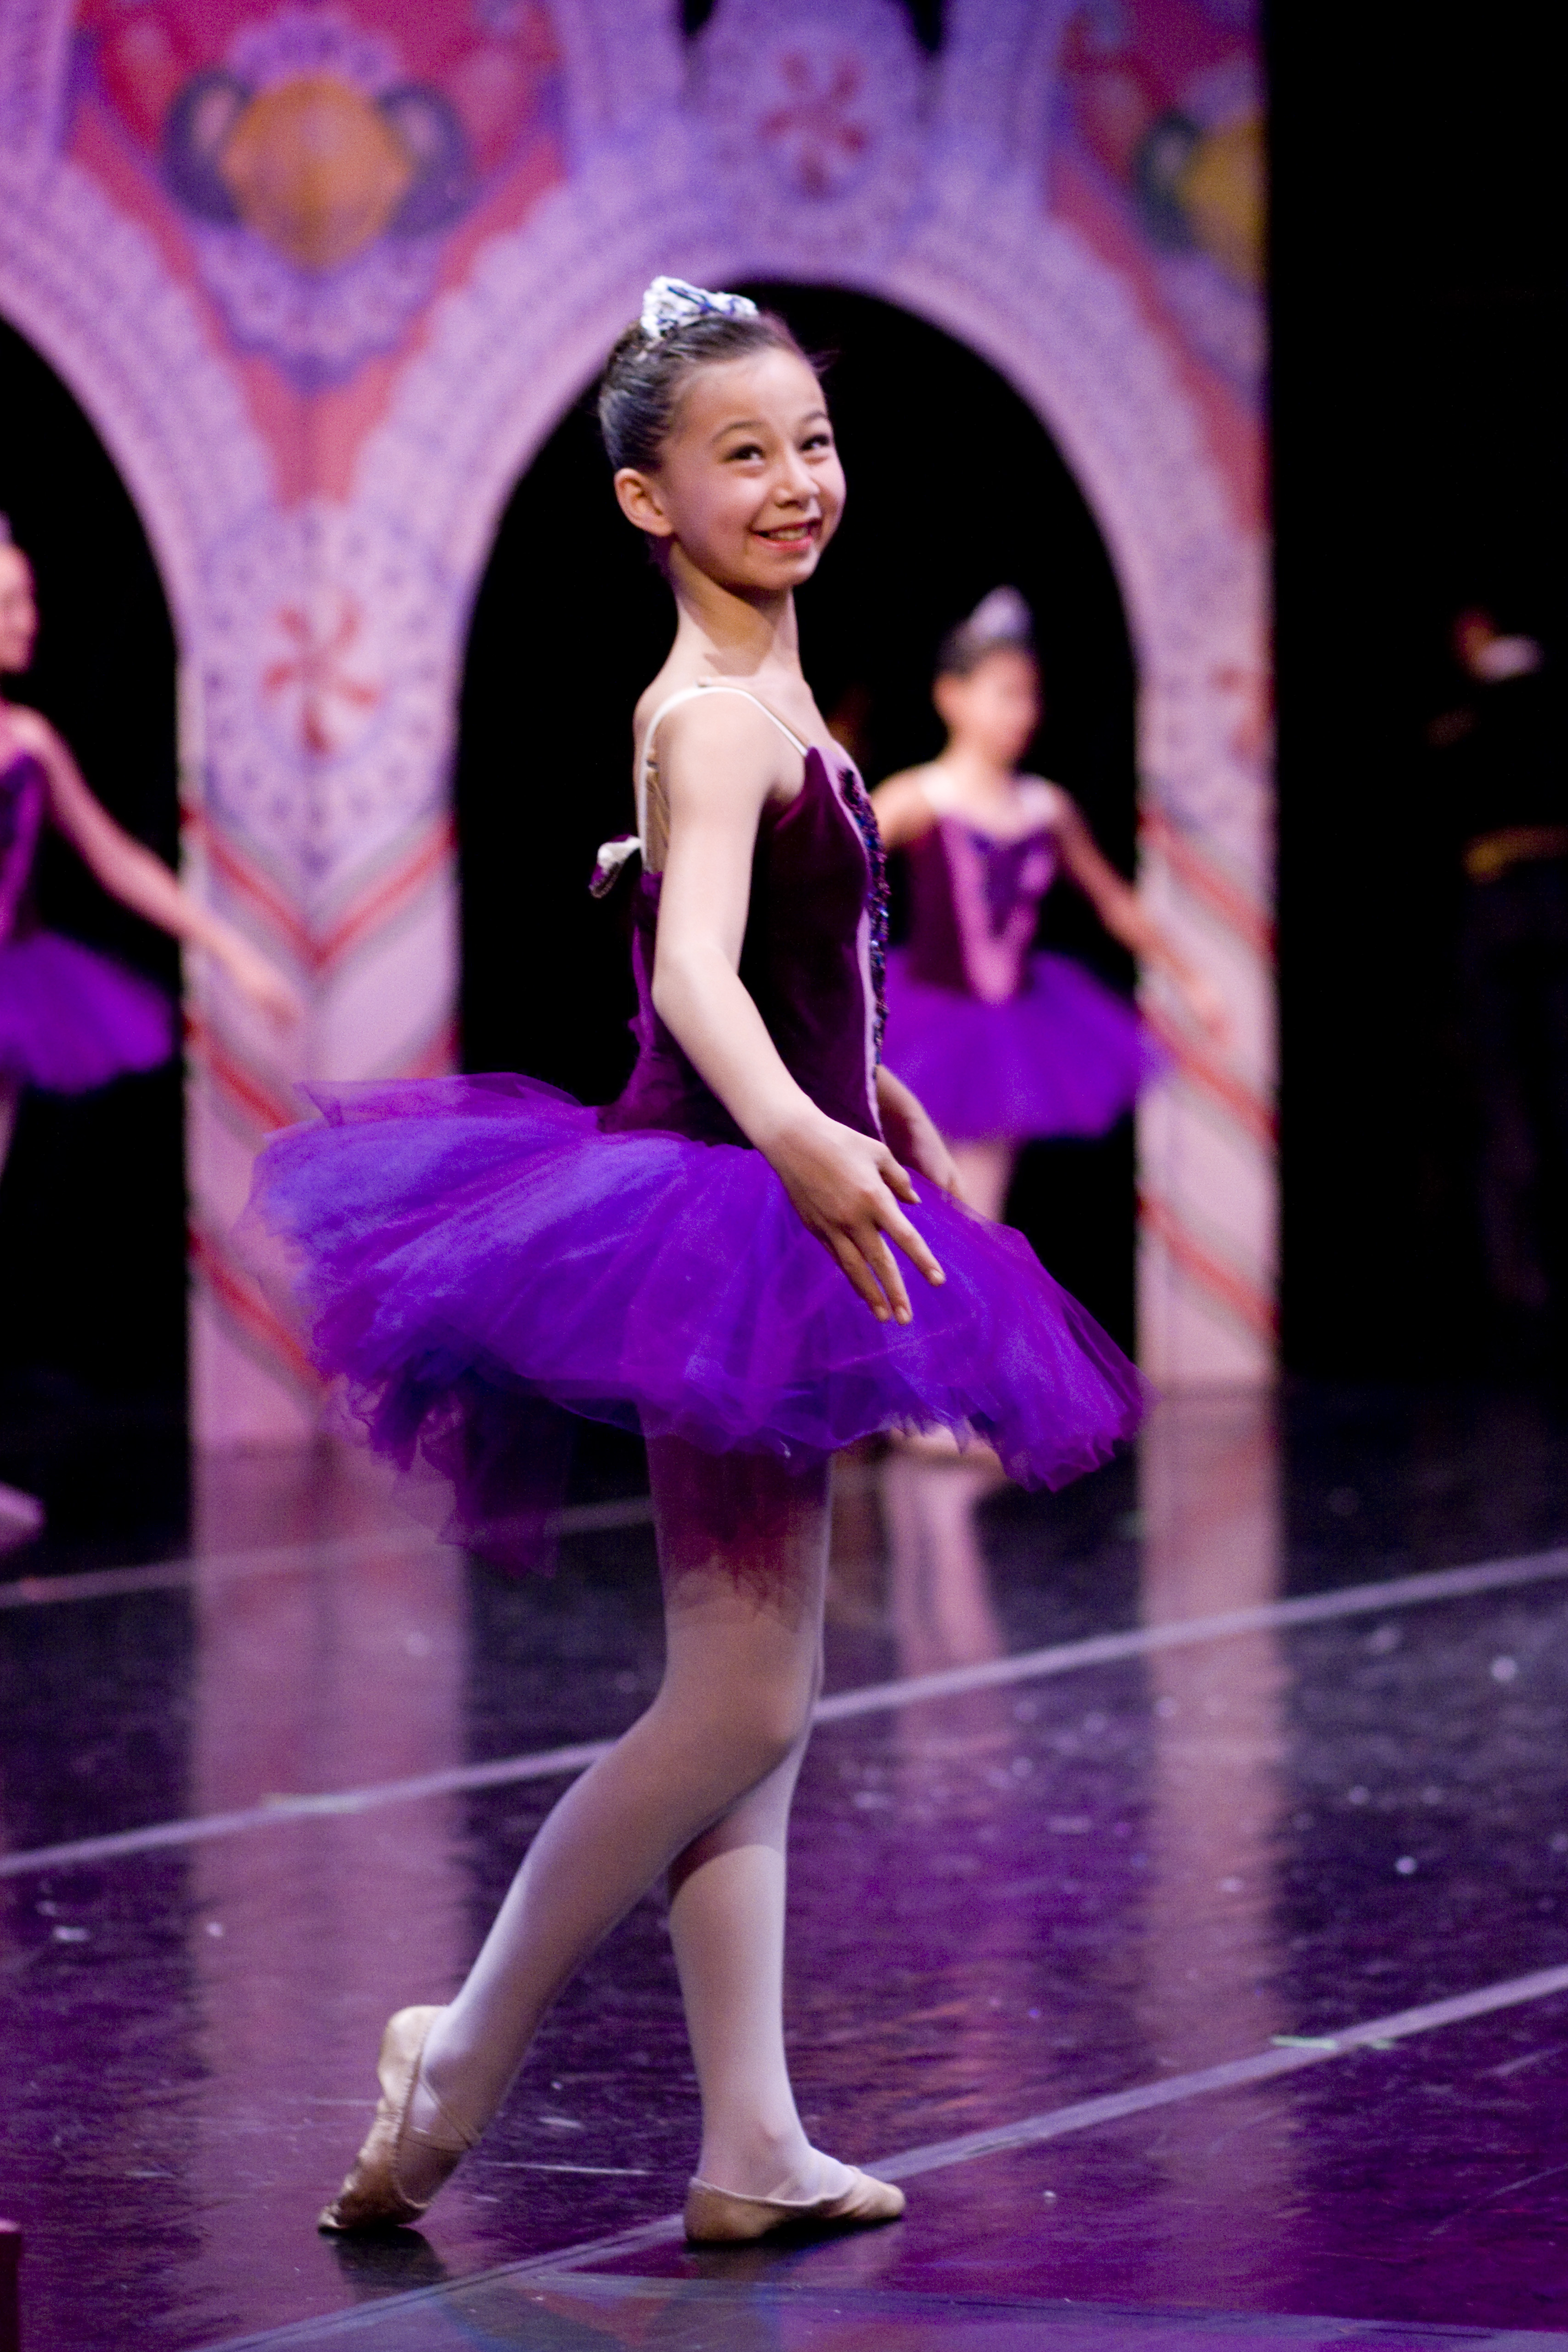 Student performing in The Nutcracker